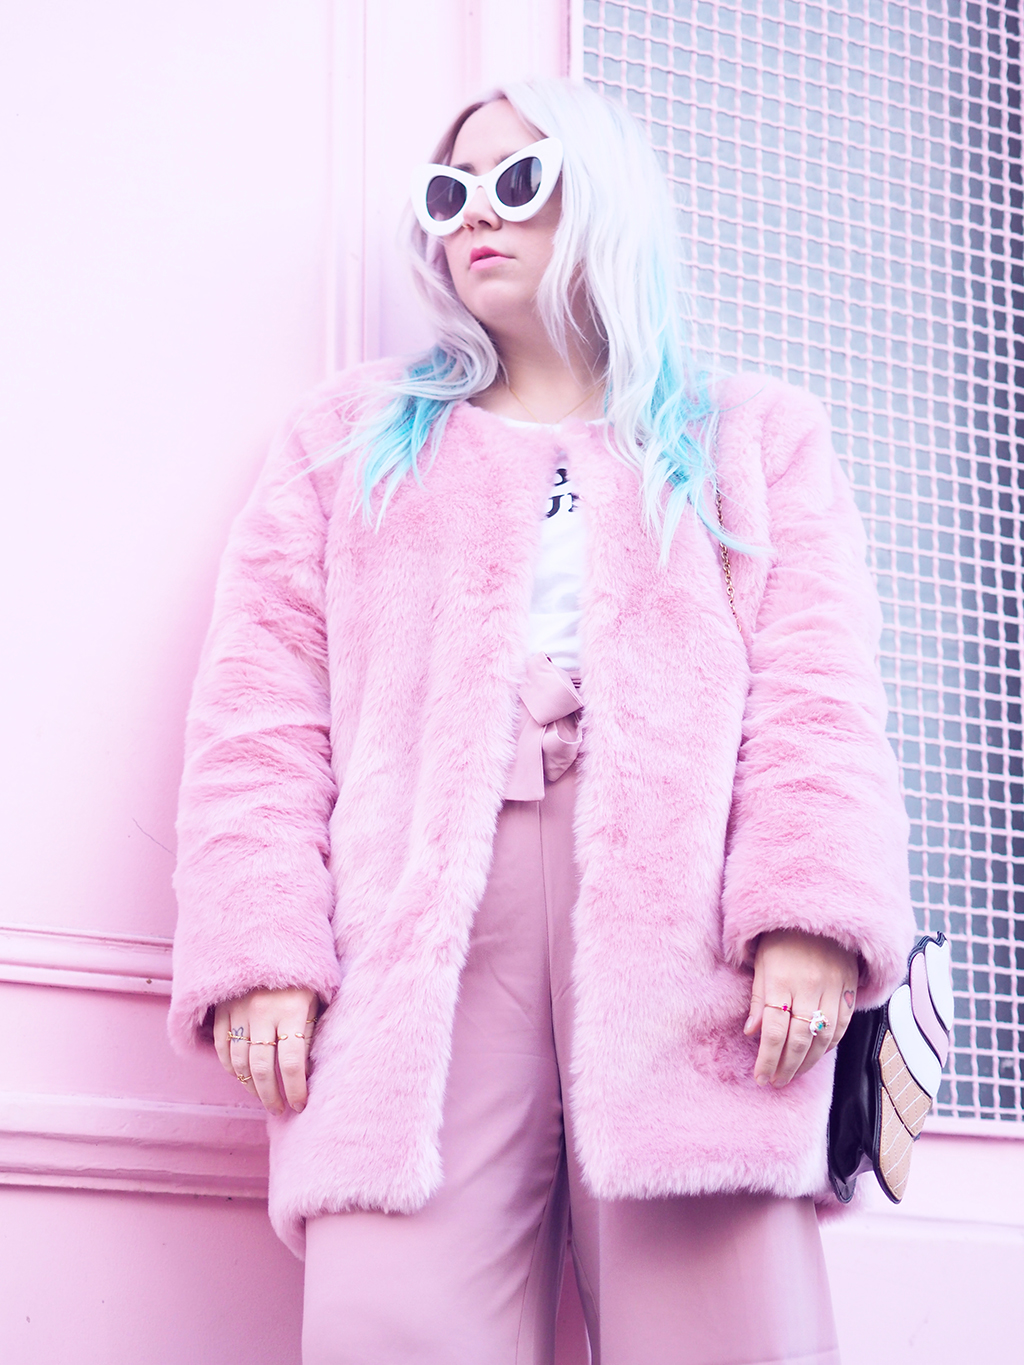 Fashion Pastel Outfit Wearing Culottes And Sneakers Fila